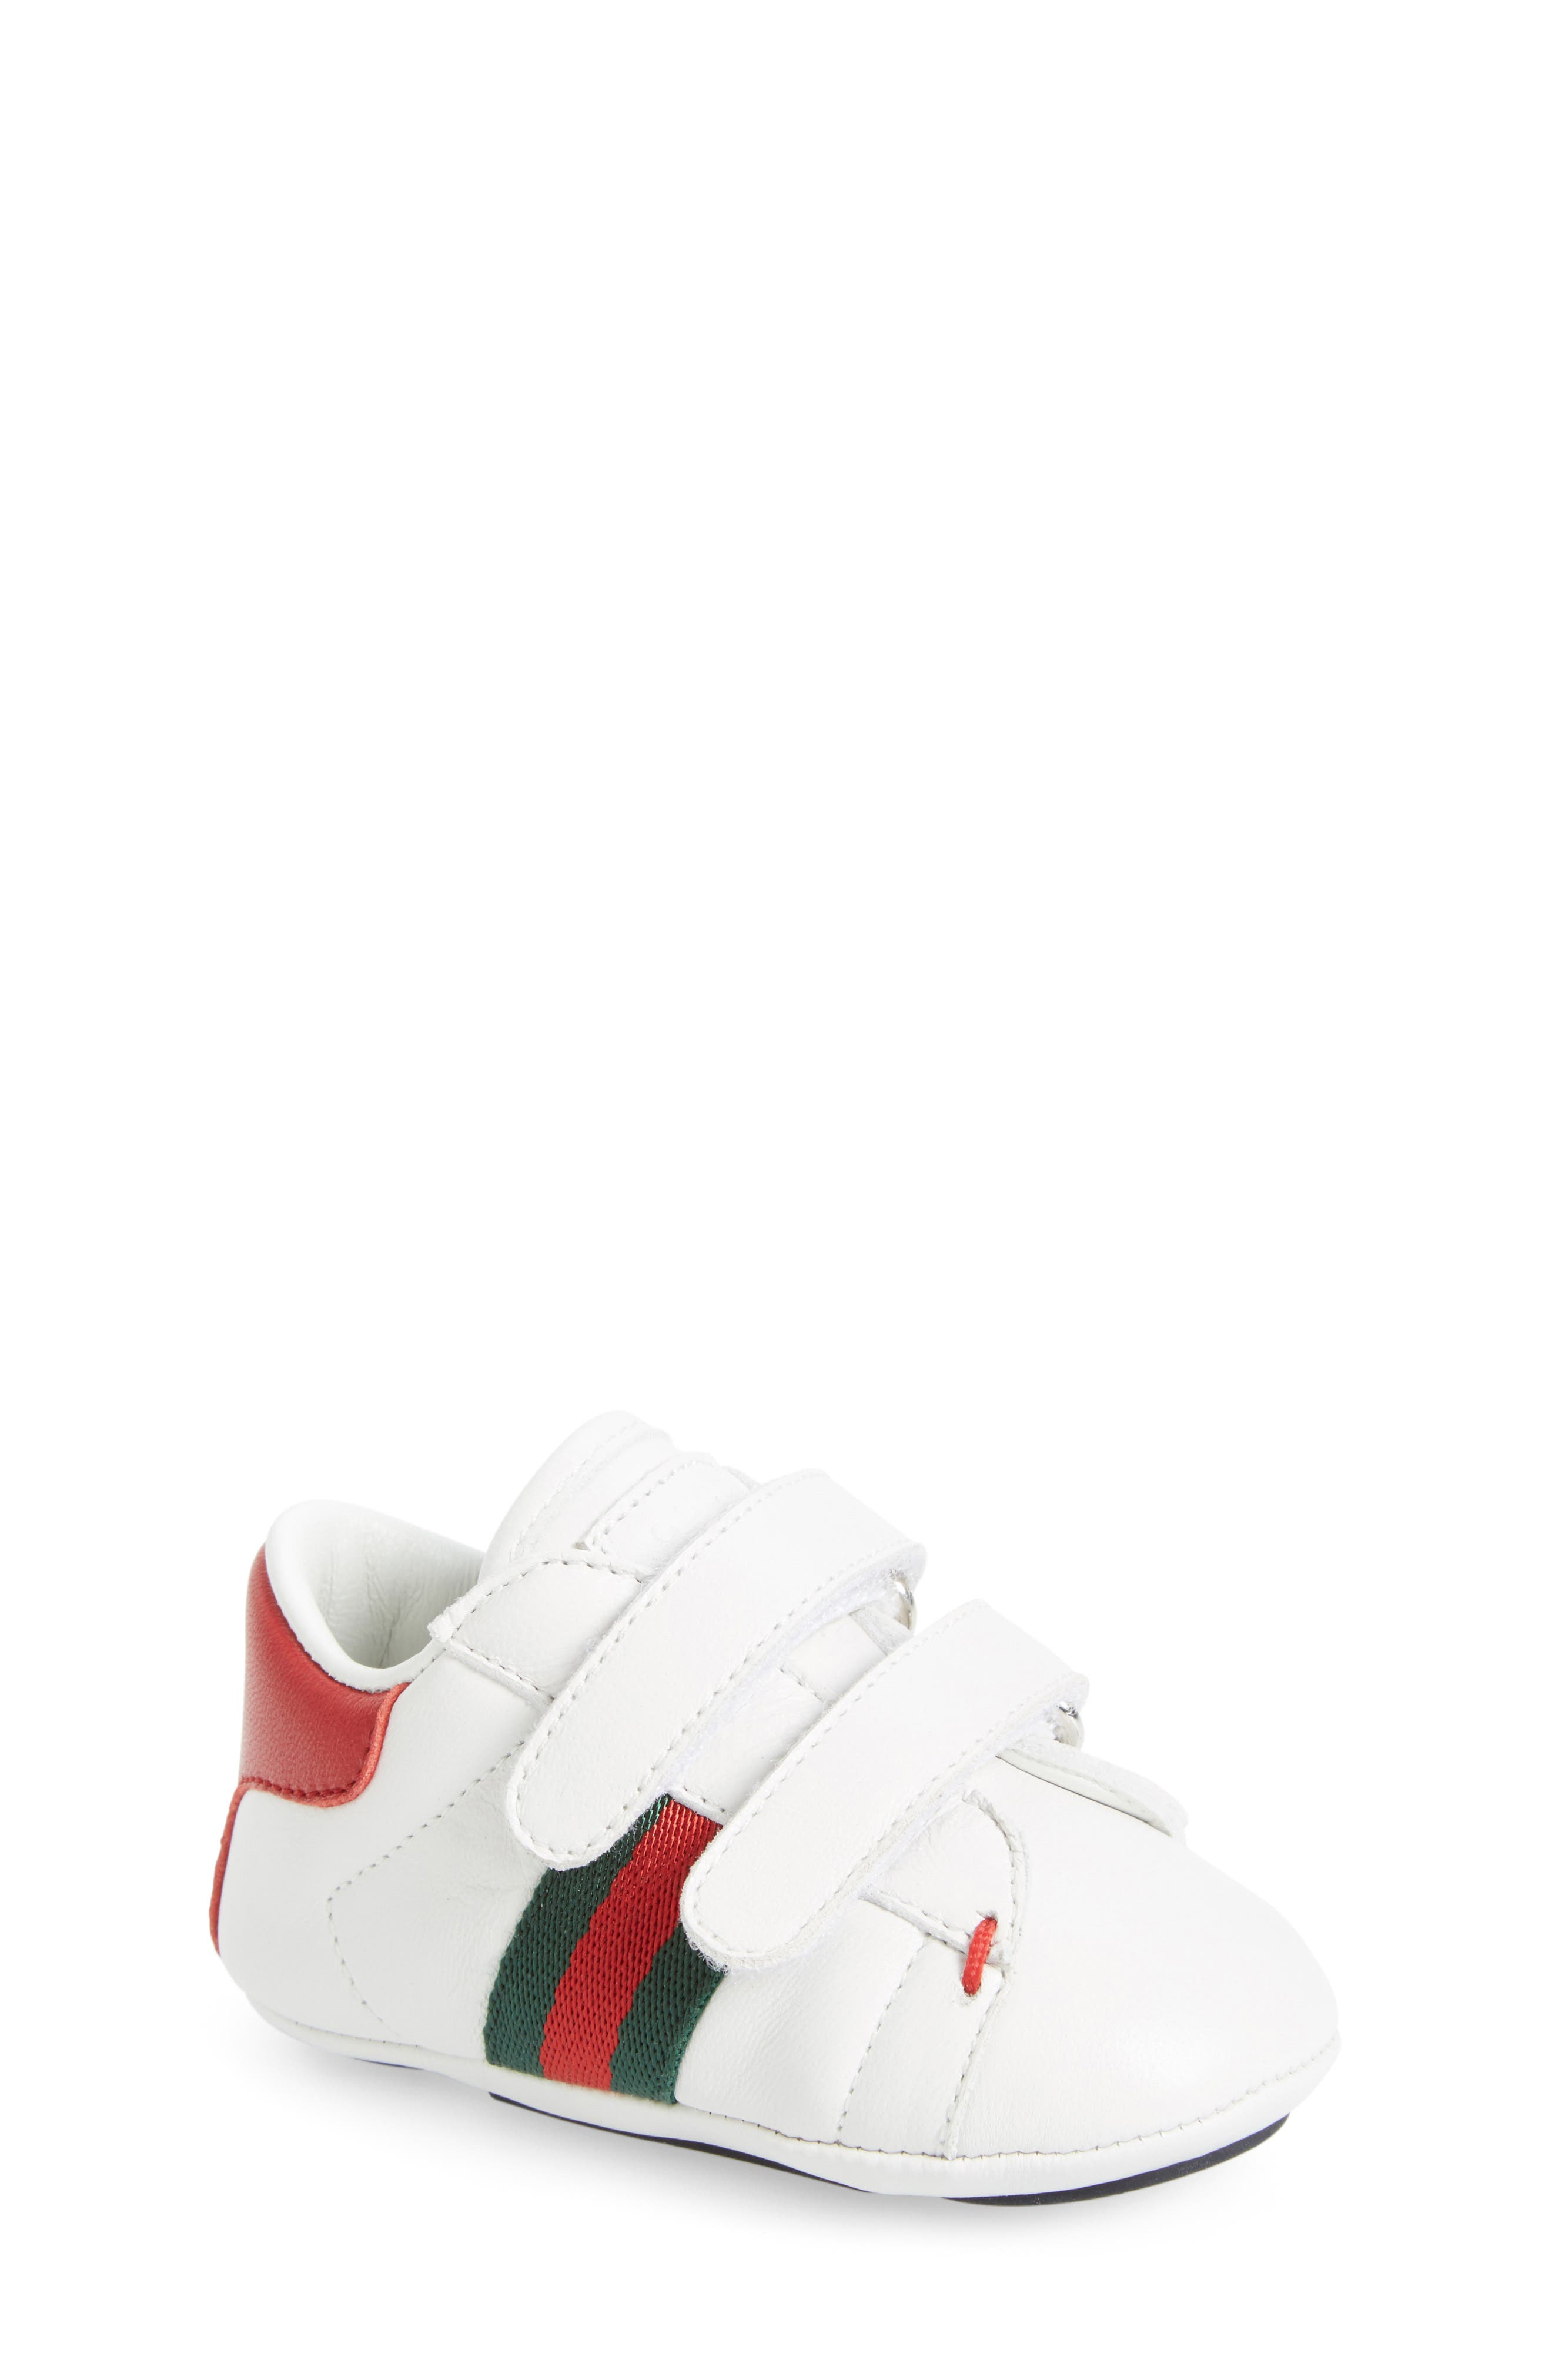 Alternate Image 1 Selected - Gucci 'Ace' Crib Shoe (Baby)